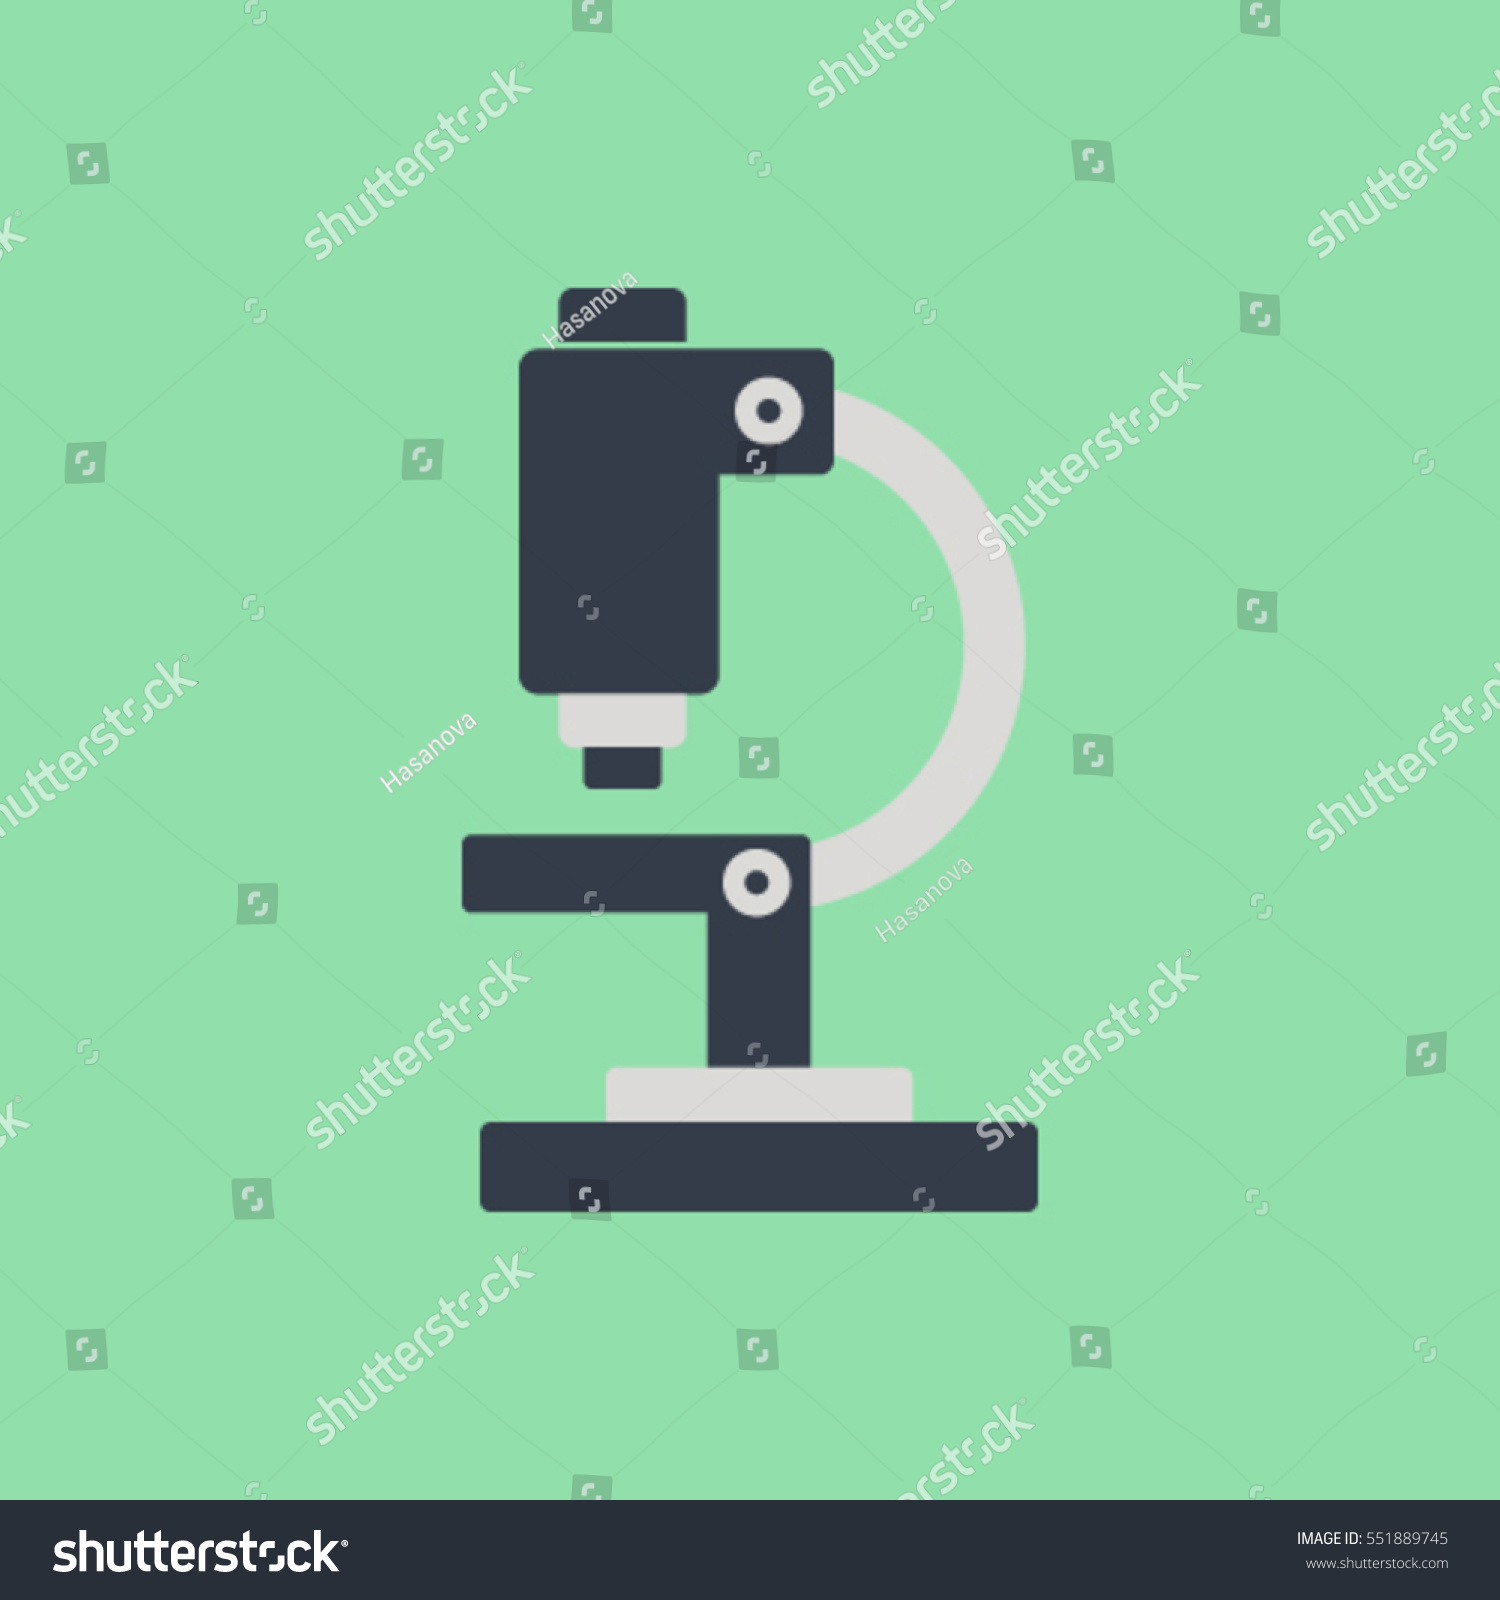 hight resolution of microscope clipart